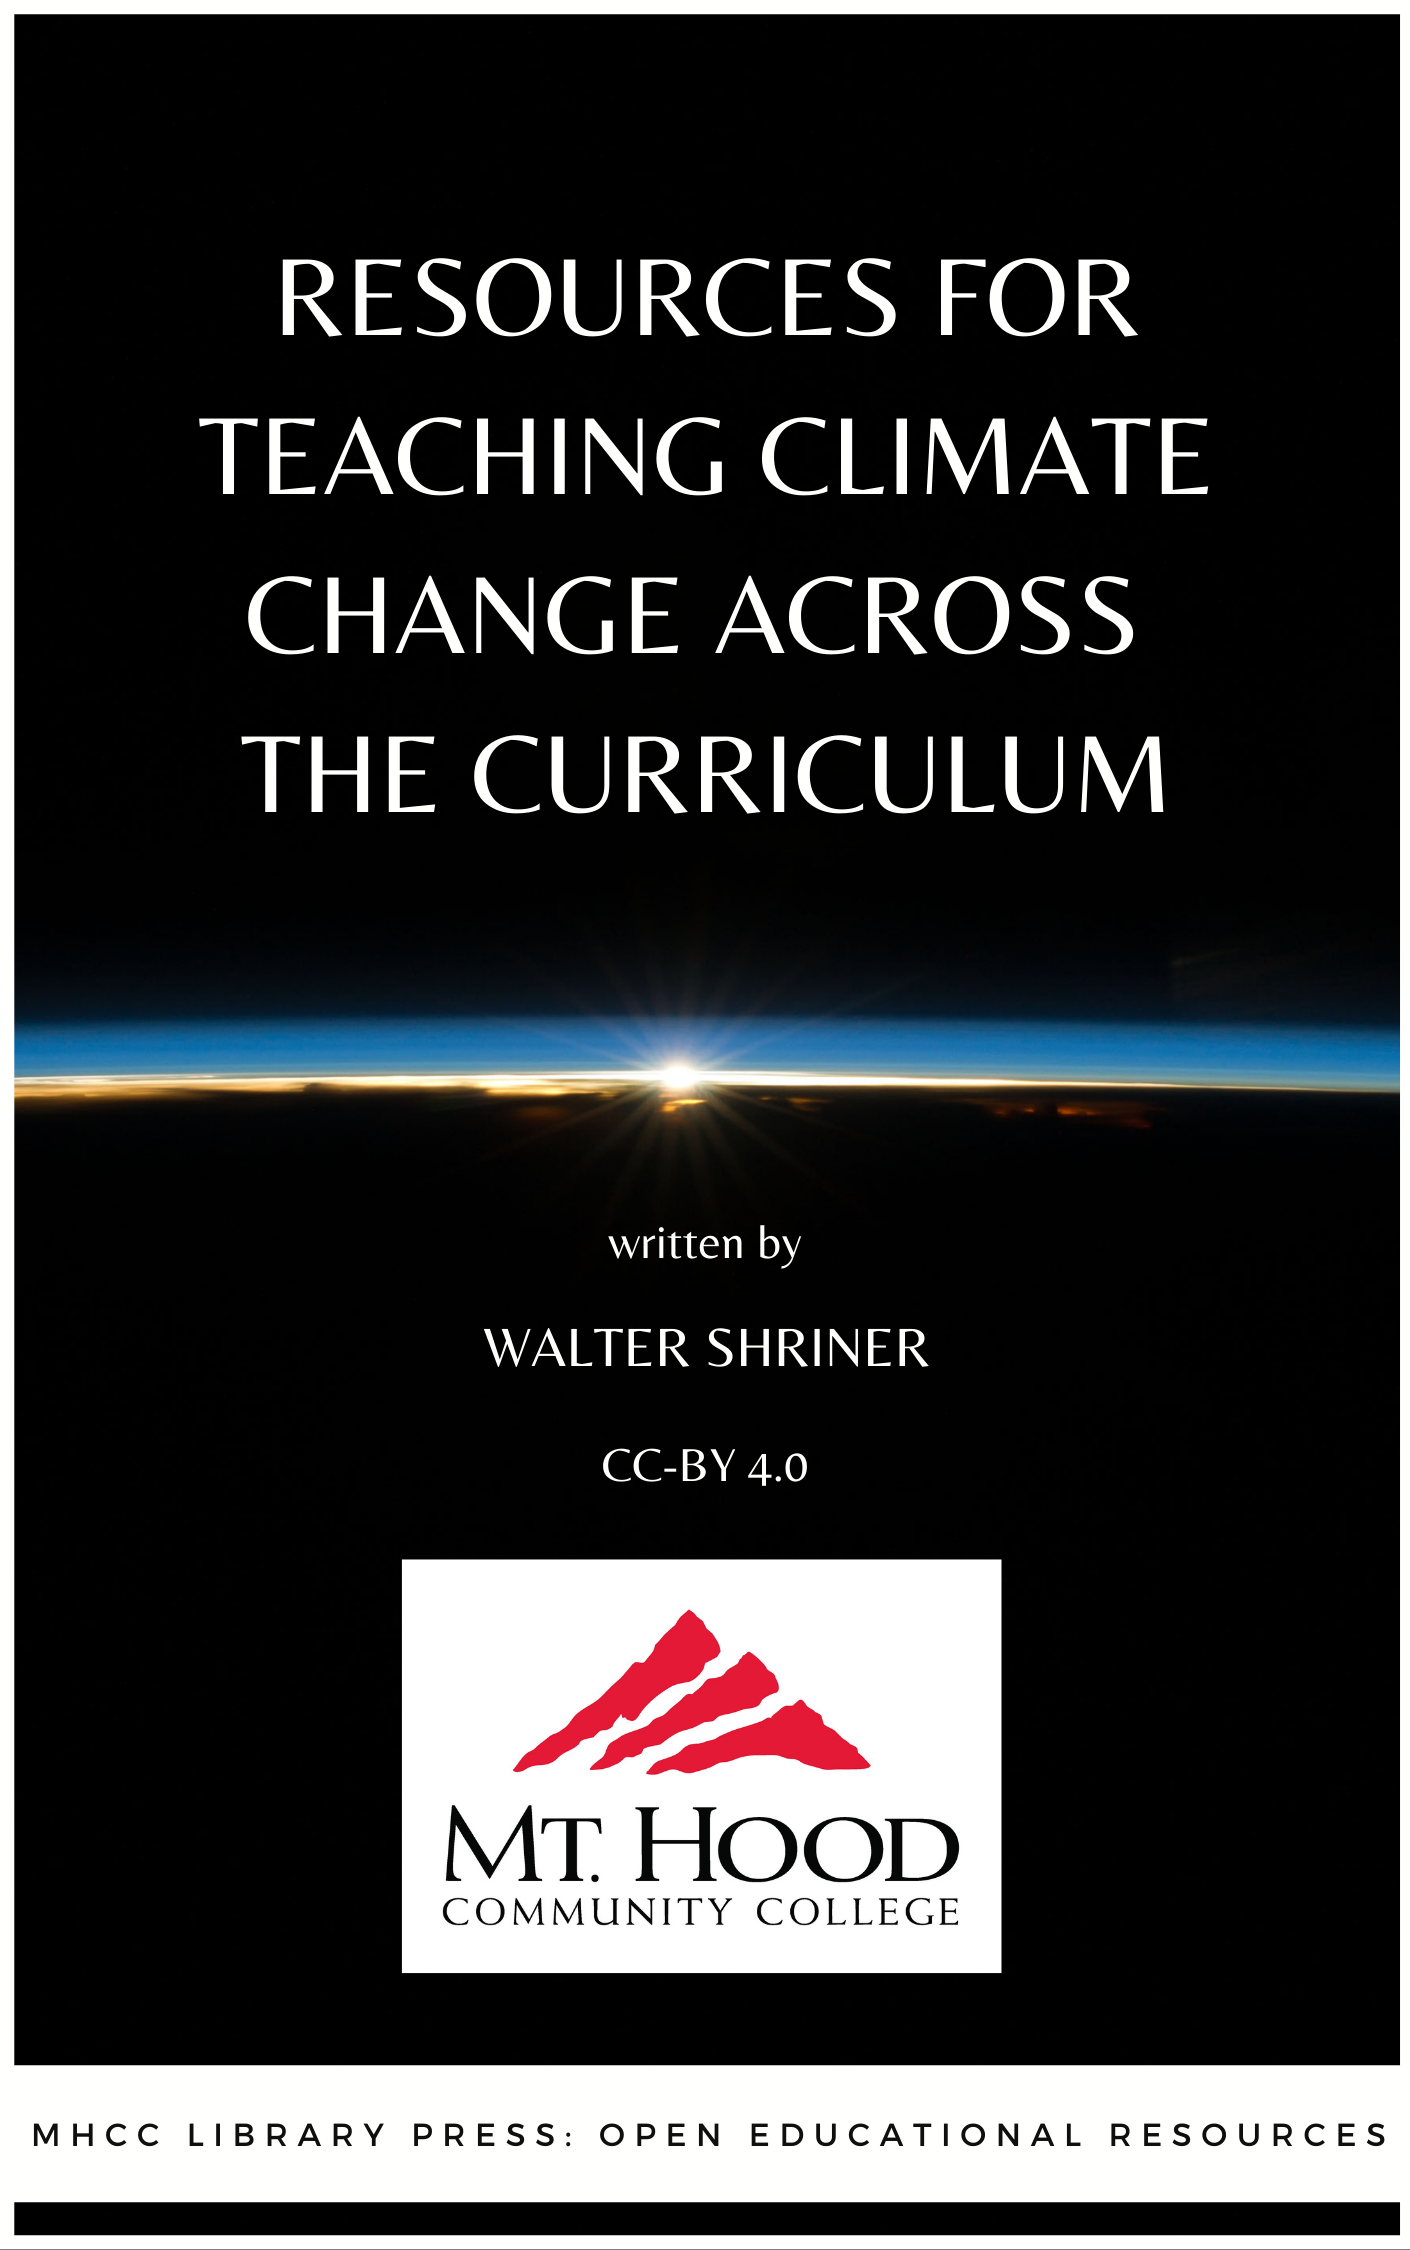 Cover image for Resources for Teaching Climate Change Across the Curriculum